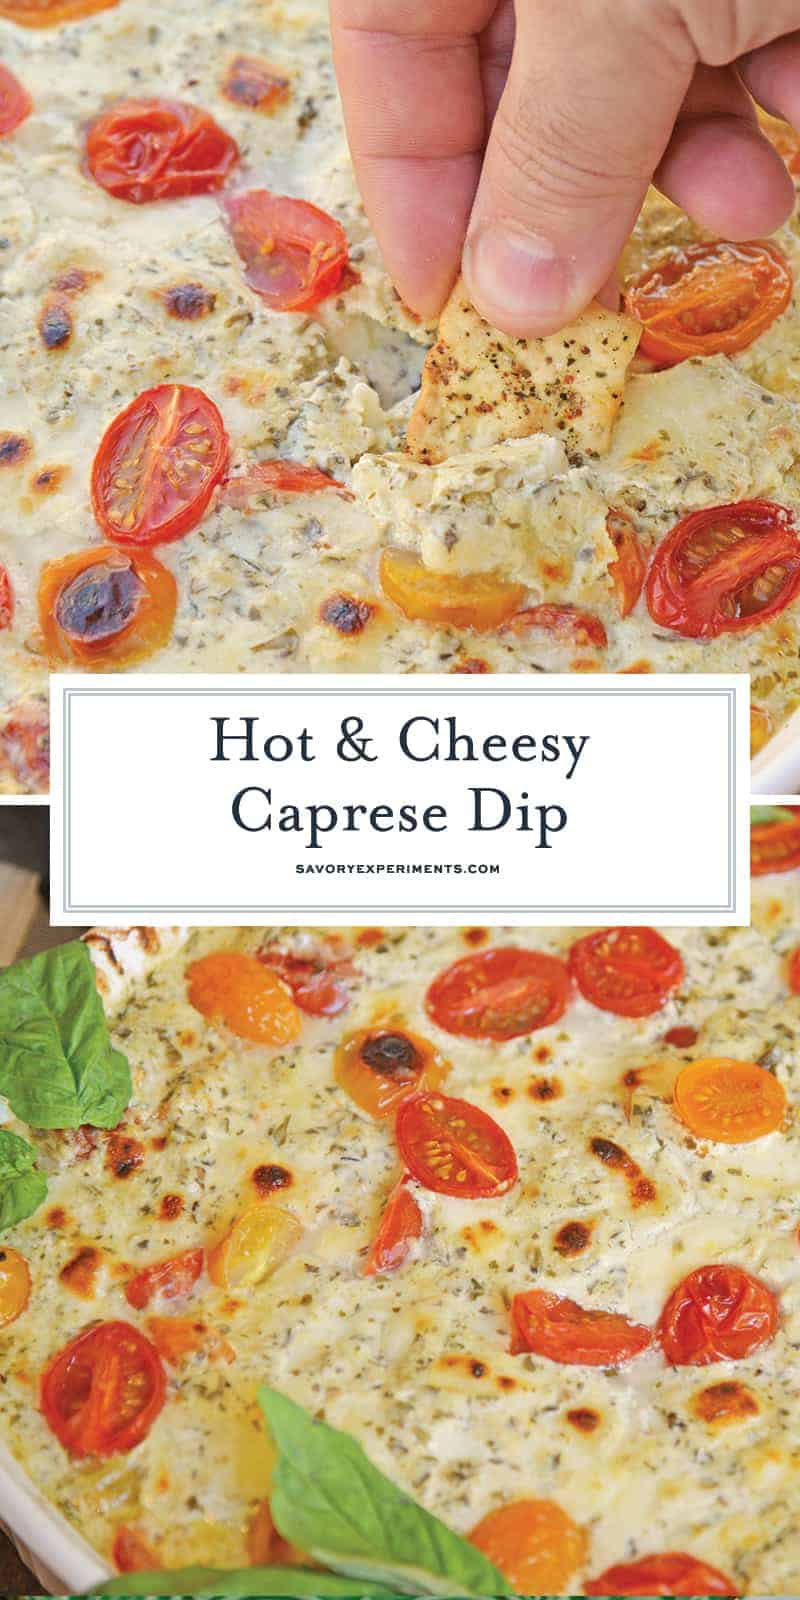 Hot Caprese Dip is a party appetizer favorite using mozzarella, pesto and sweet tomatoes. An easy appetizer your guests will love! #capresedip #capresesalad #partyappetizers www.savoryexperiments.com